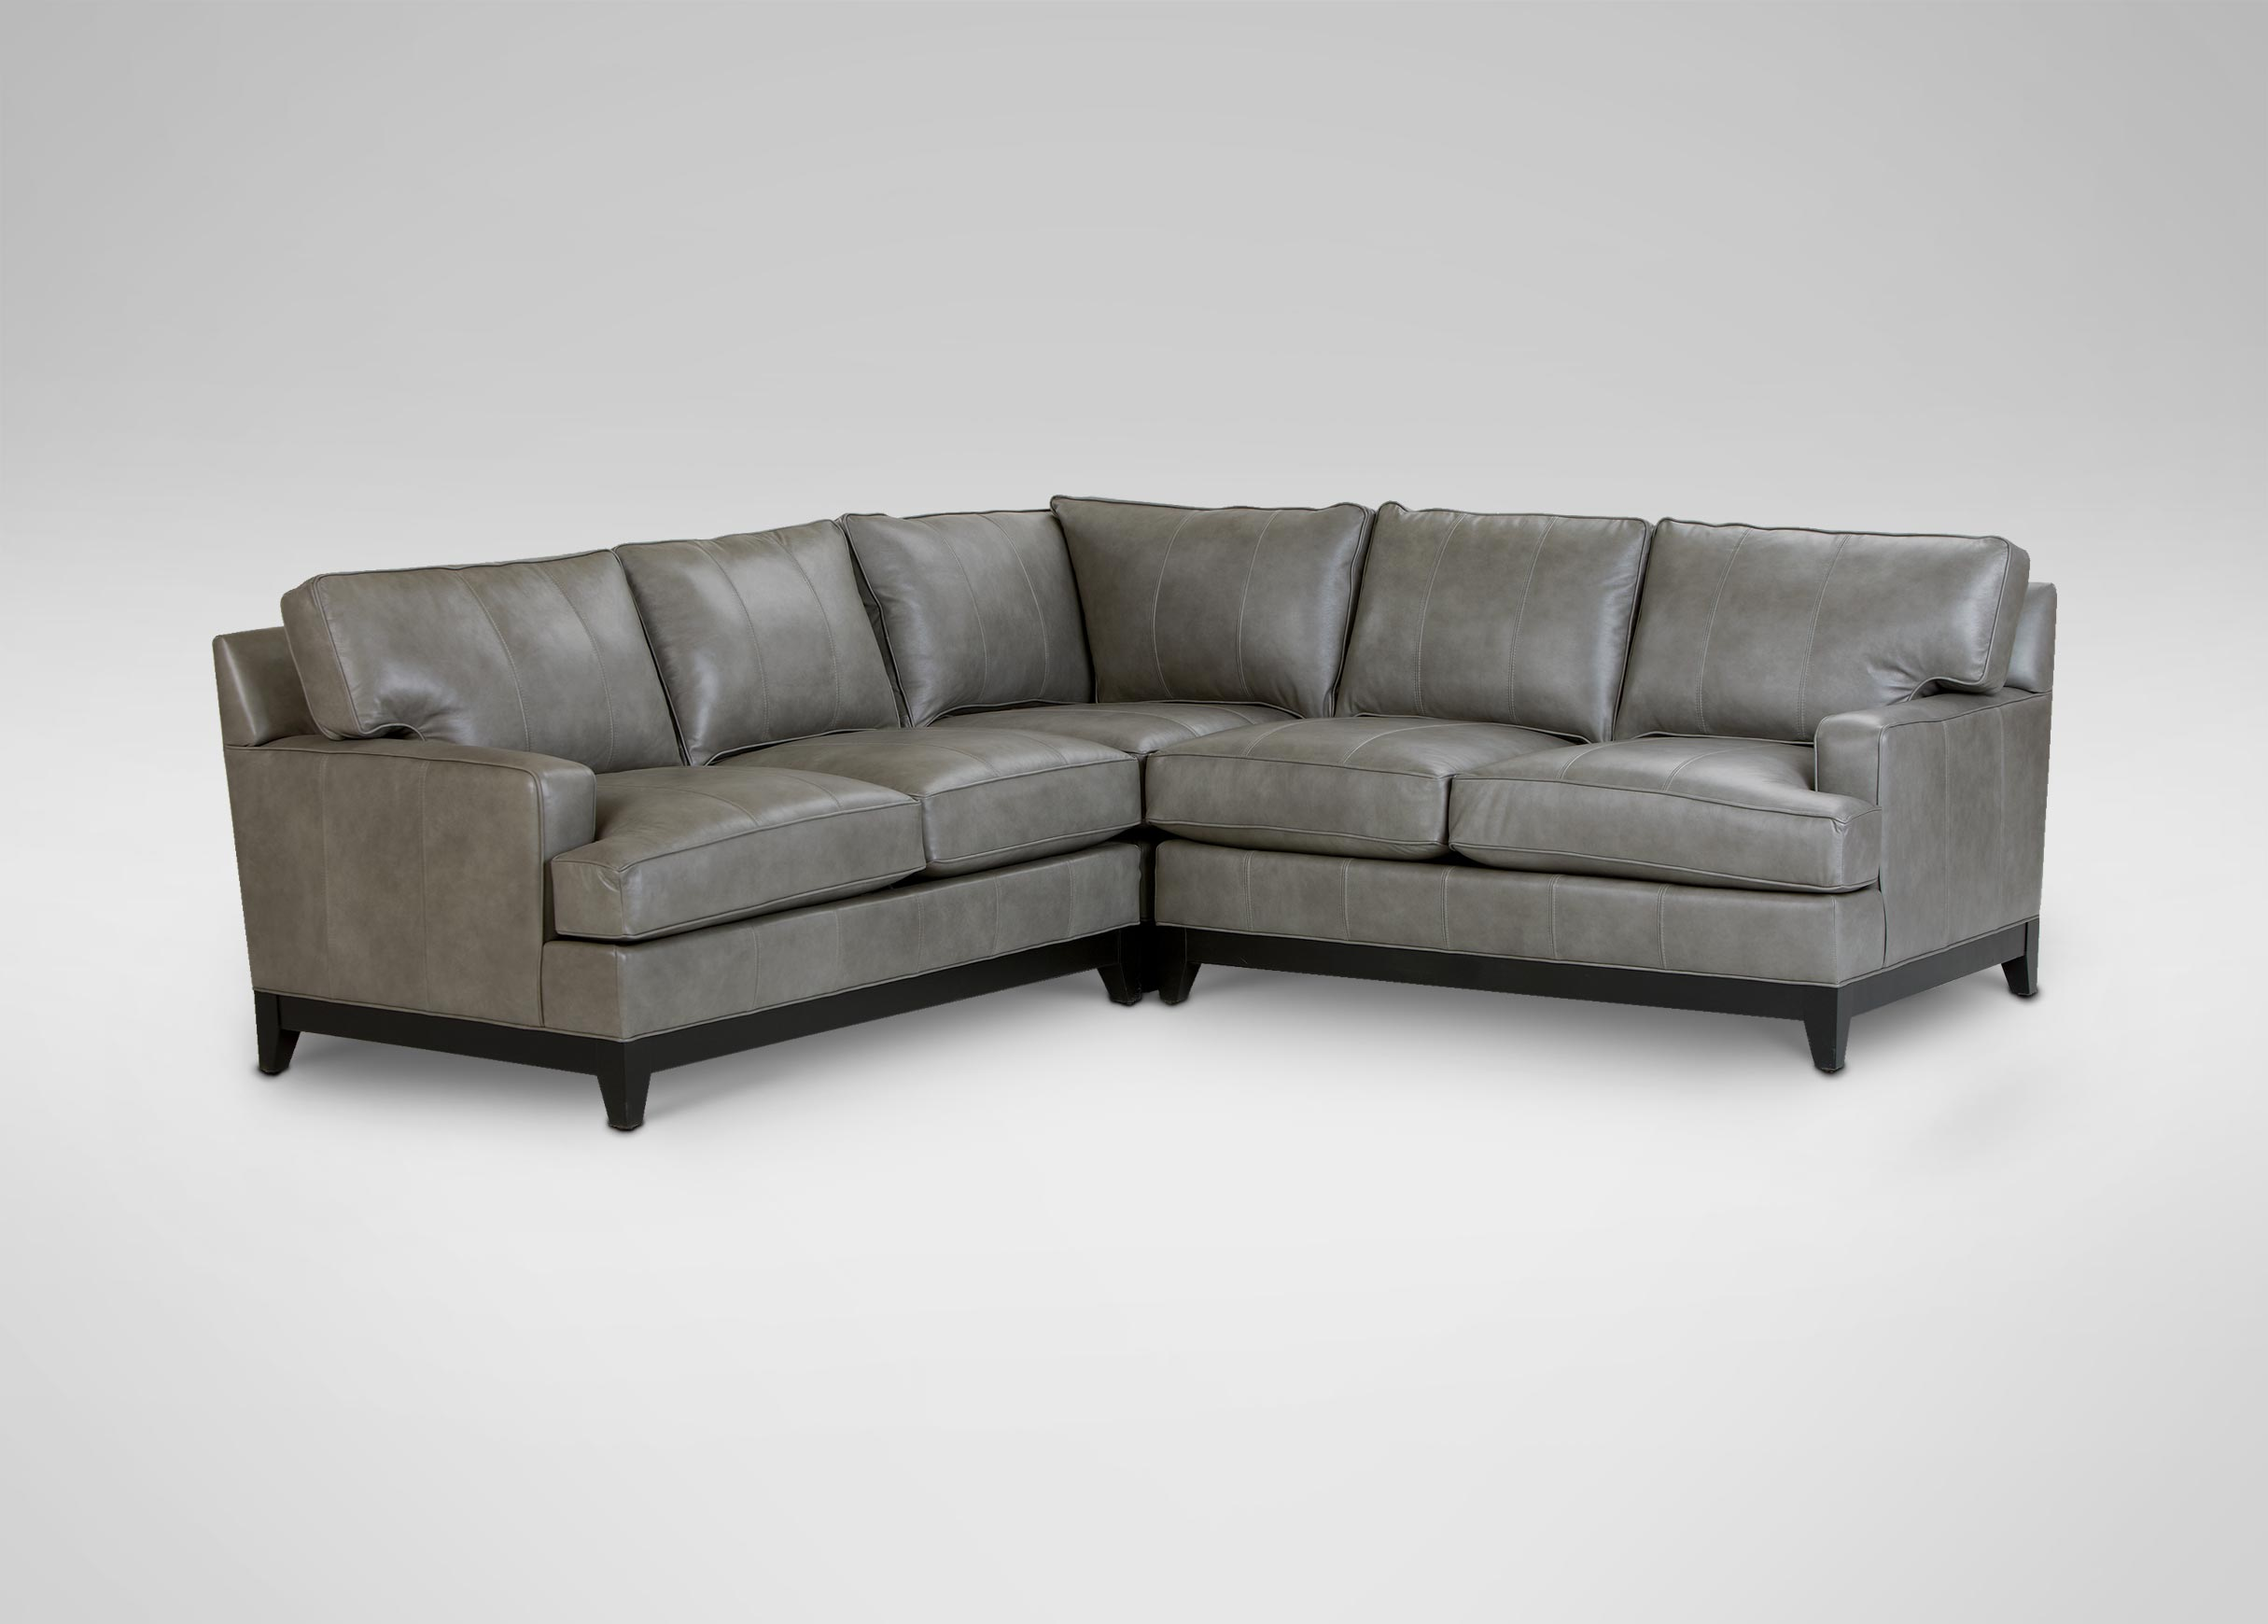 Images Arcata Leather Sectional   large_gray : ethan allen leather sectional - Sectionals, Sofas & Couches